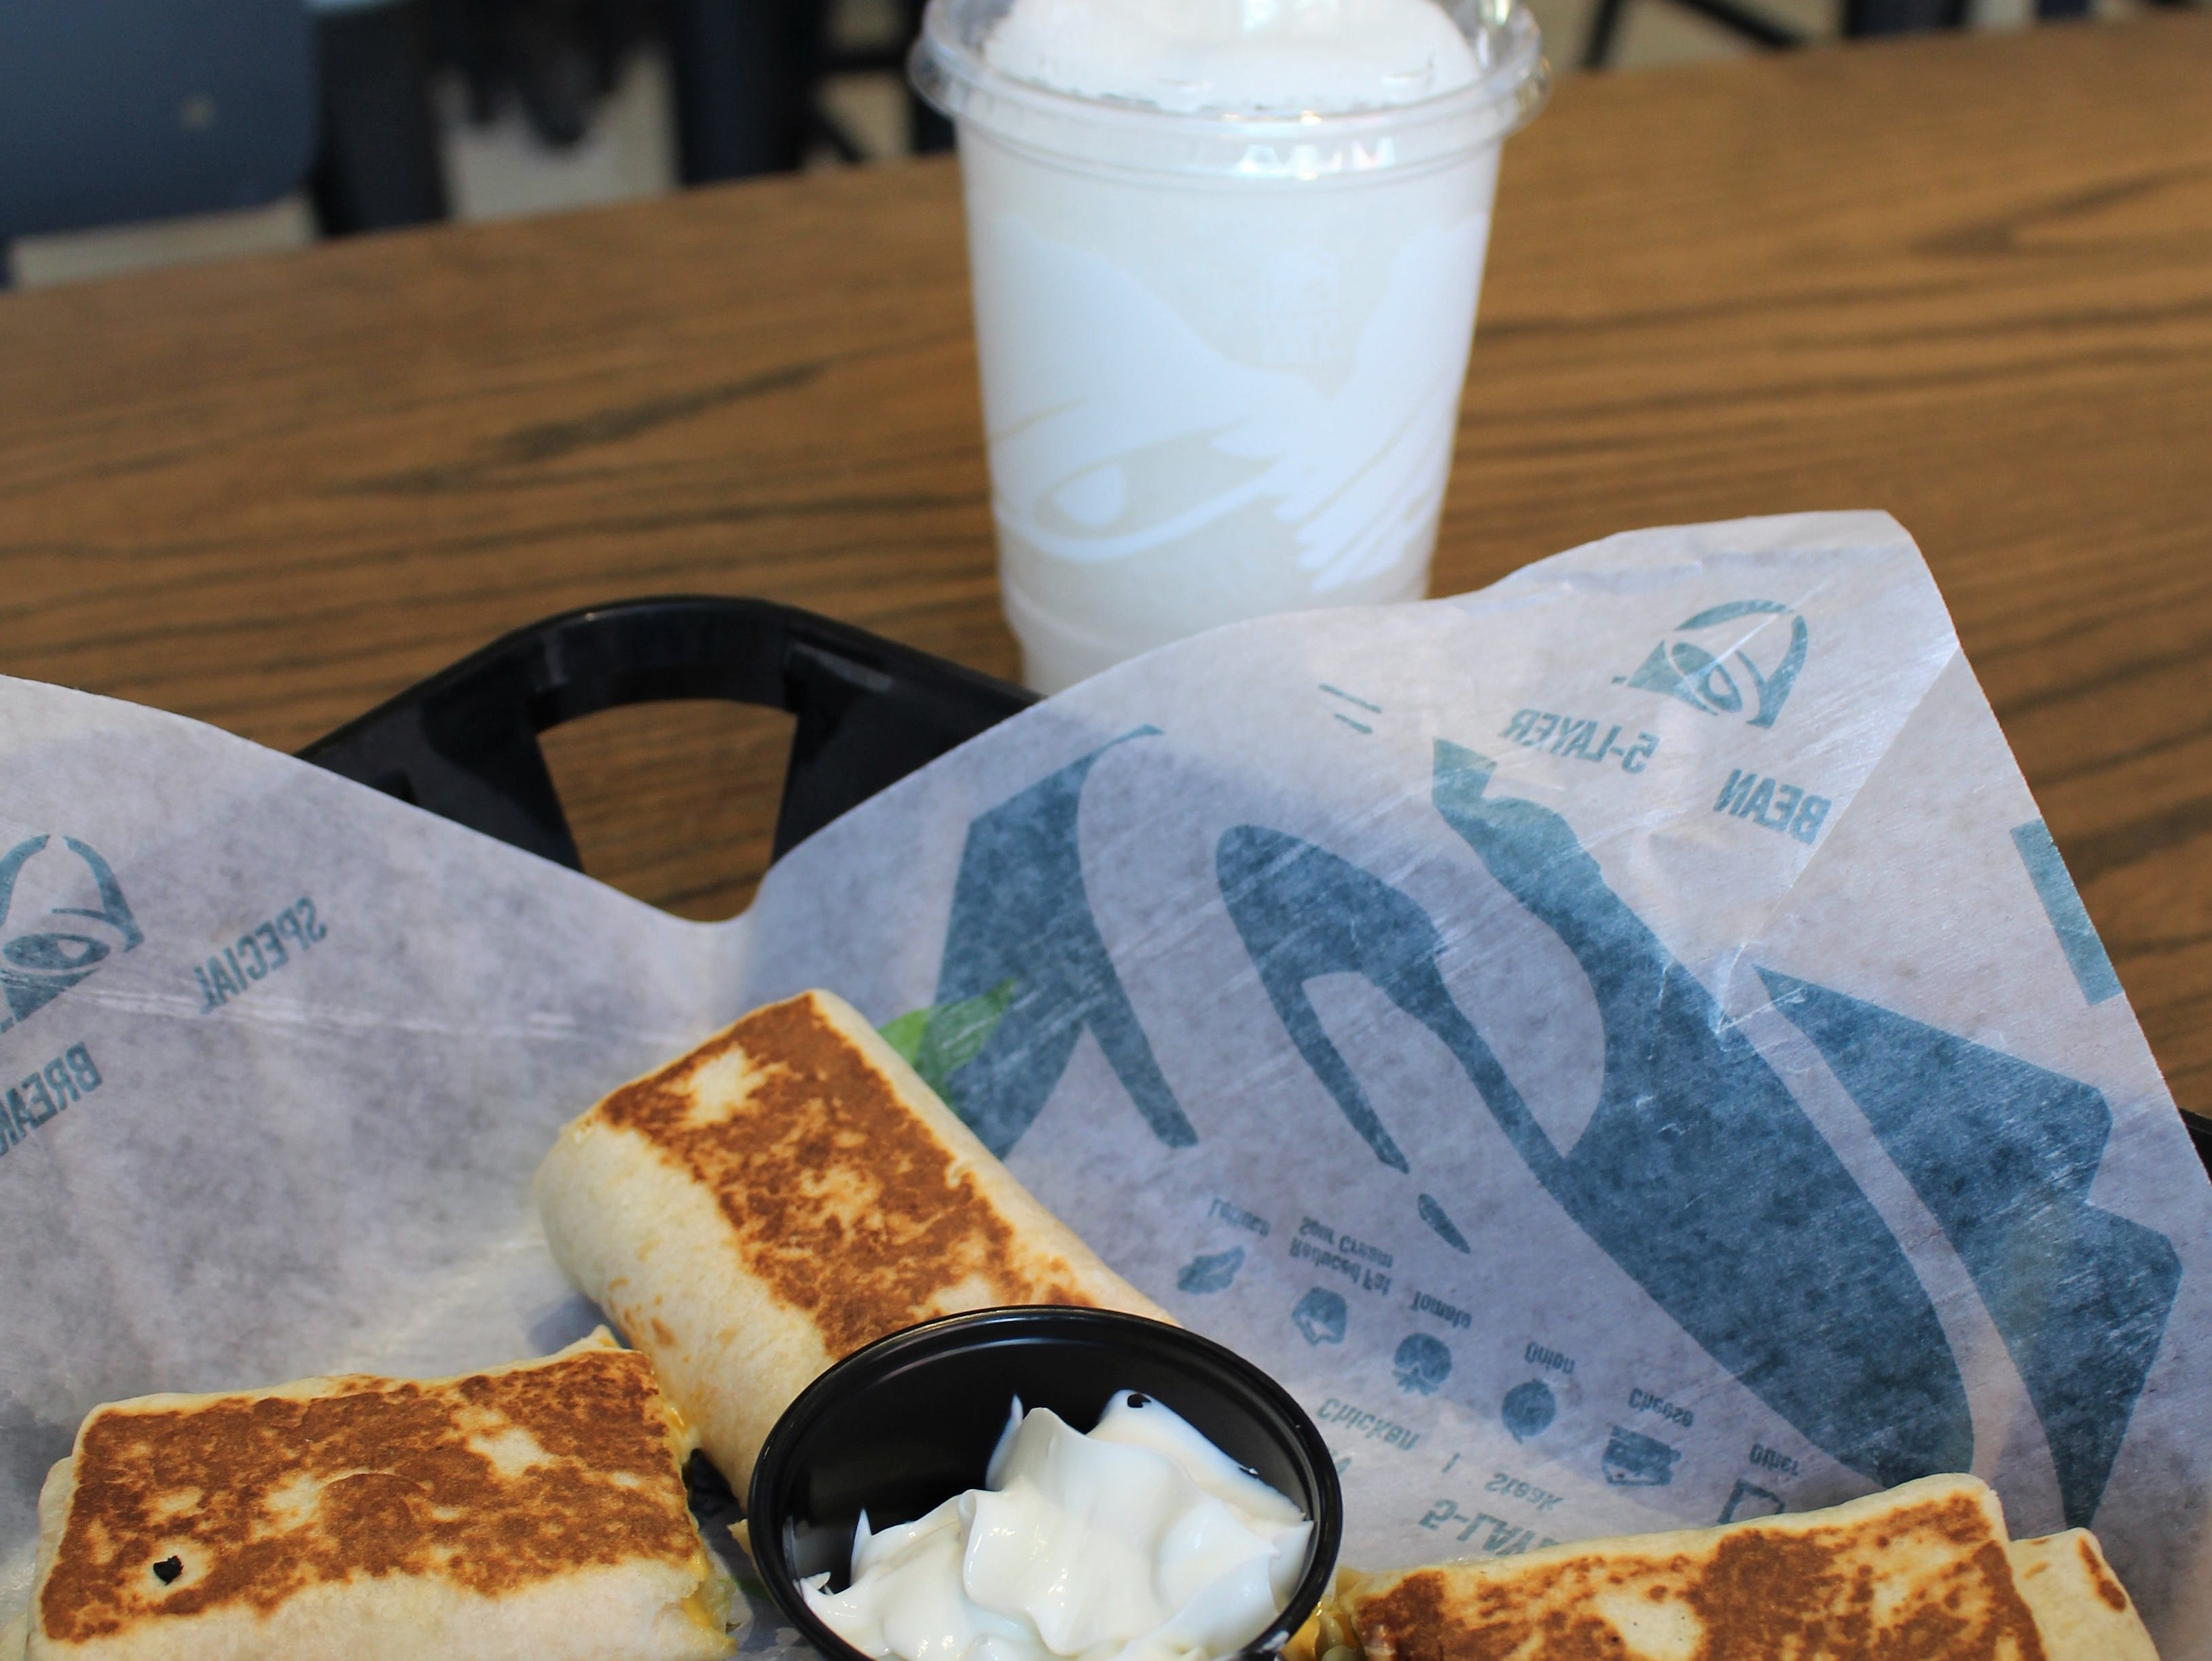 Taco Bell Cantina's menu includes items not available at traditional Taco Bell restaurants such as Cheese Jalapeno Dippers and Mini Quesadilla Nachos.